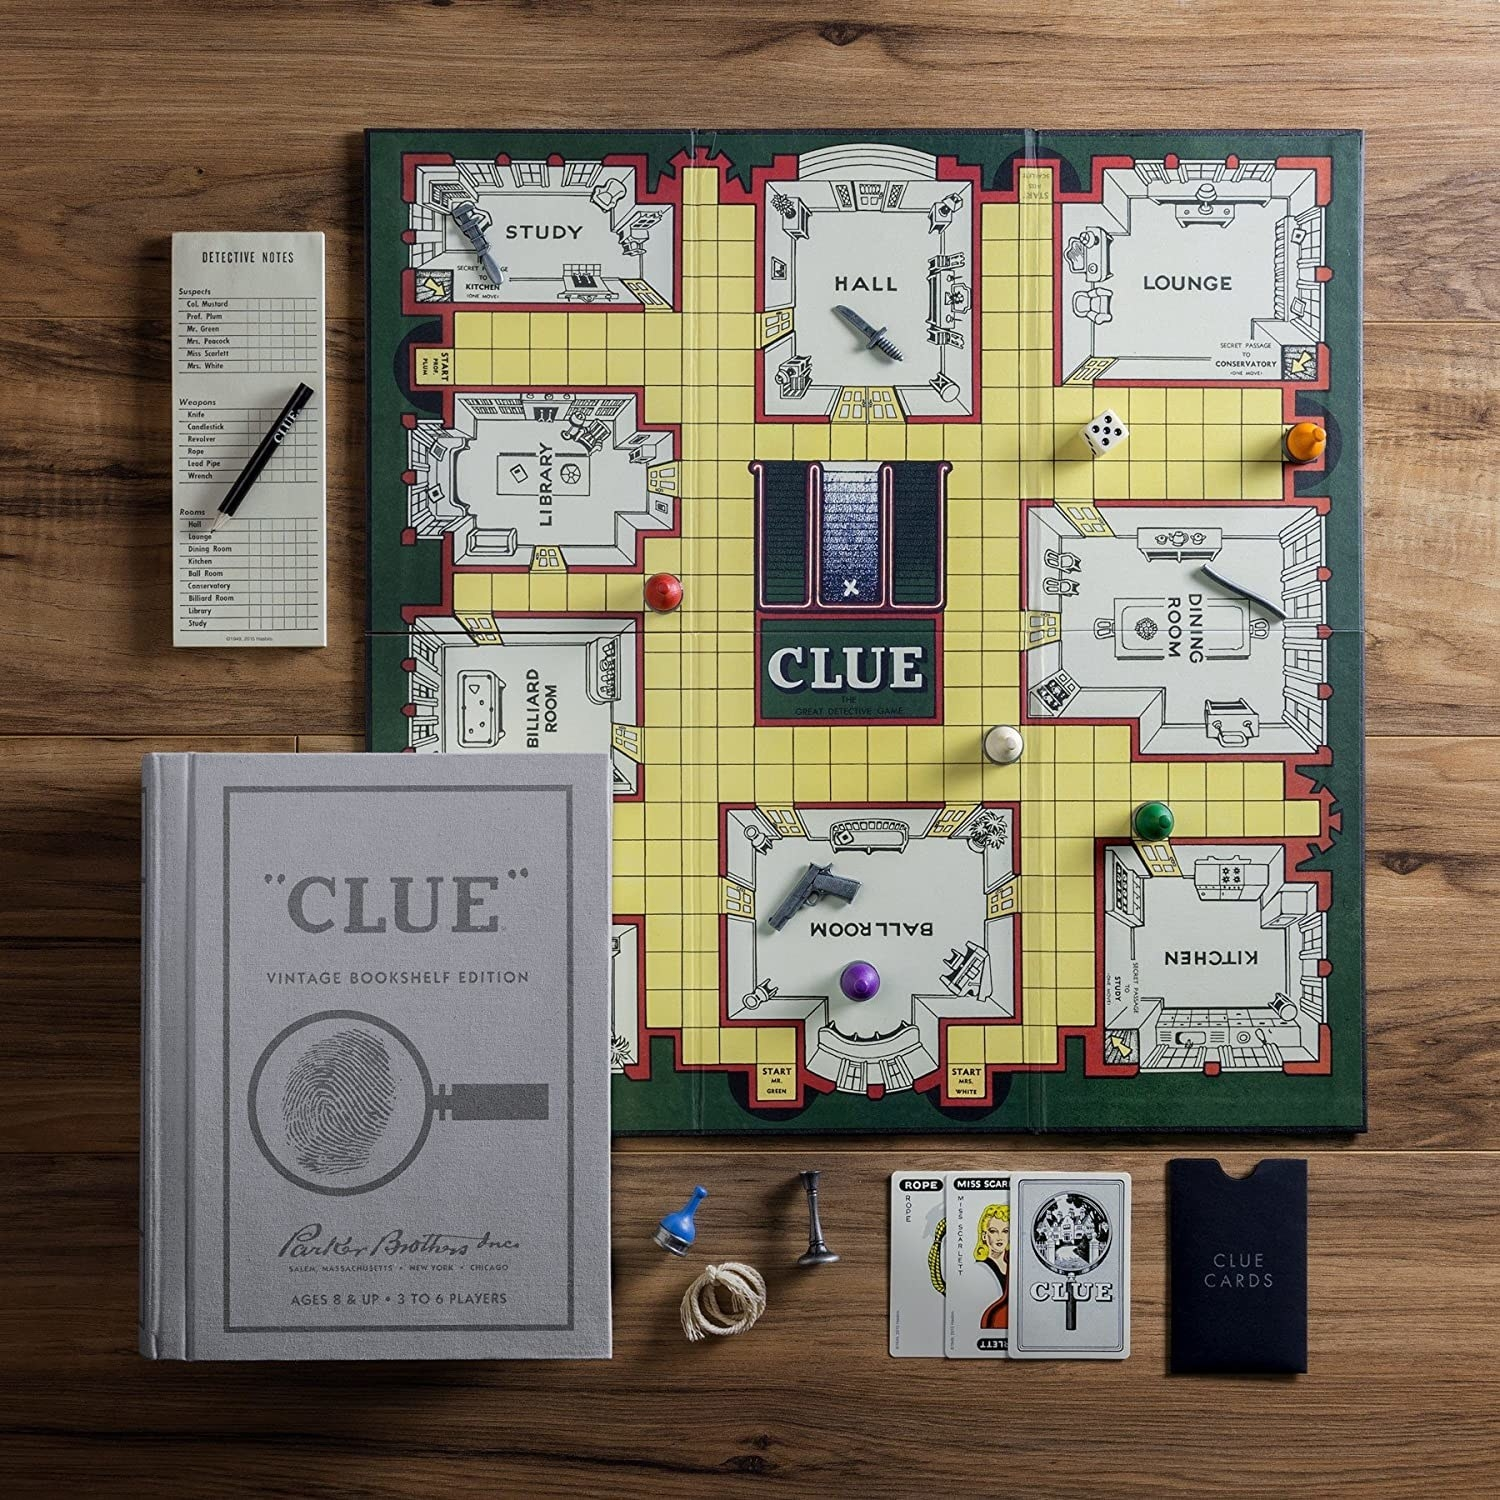 The board game and pieces, plus the grey book cover storage